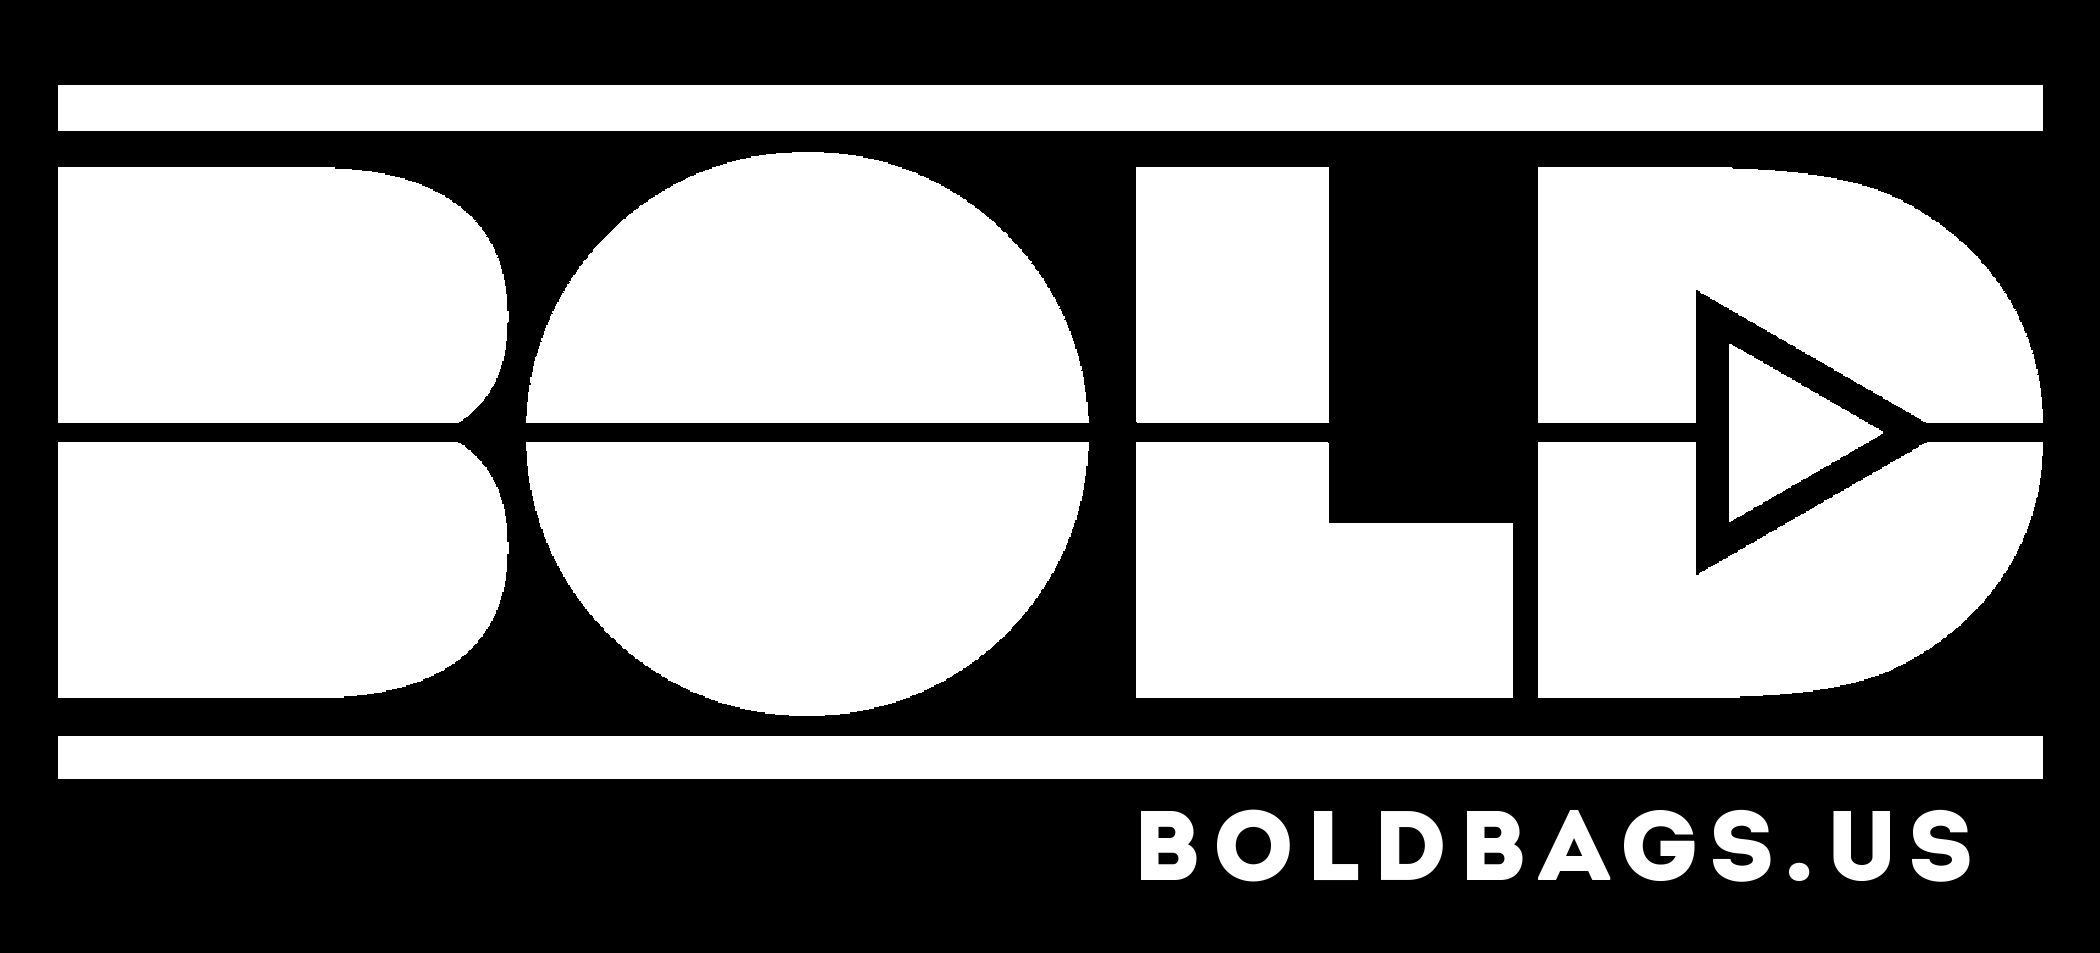 BOLD BAGS LOGO.png